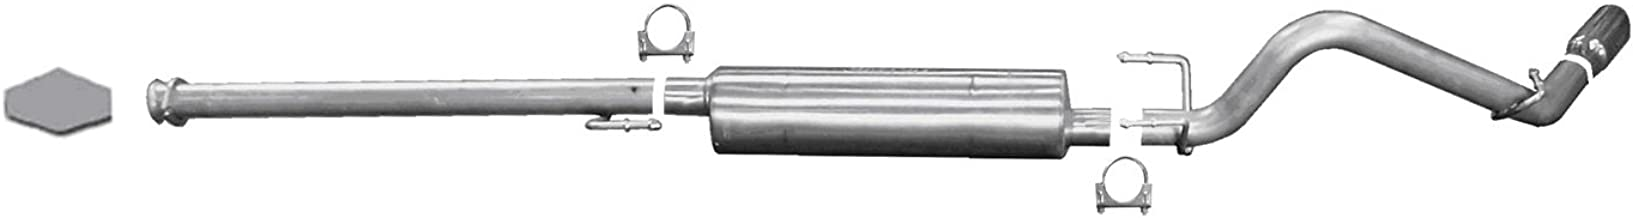 Gibson 618802 Stainless Steel Single Exhaust System